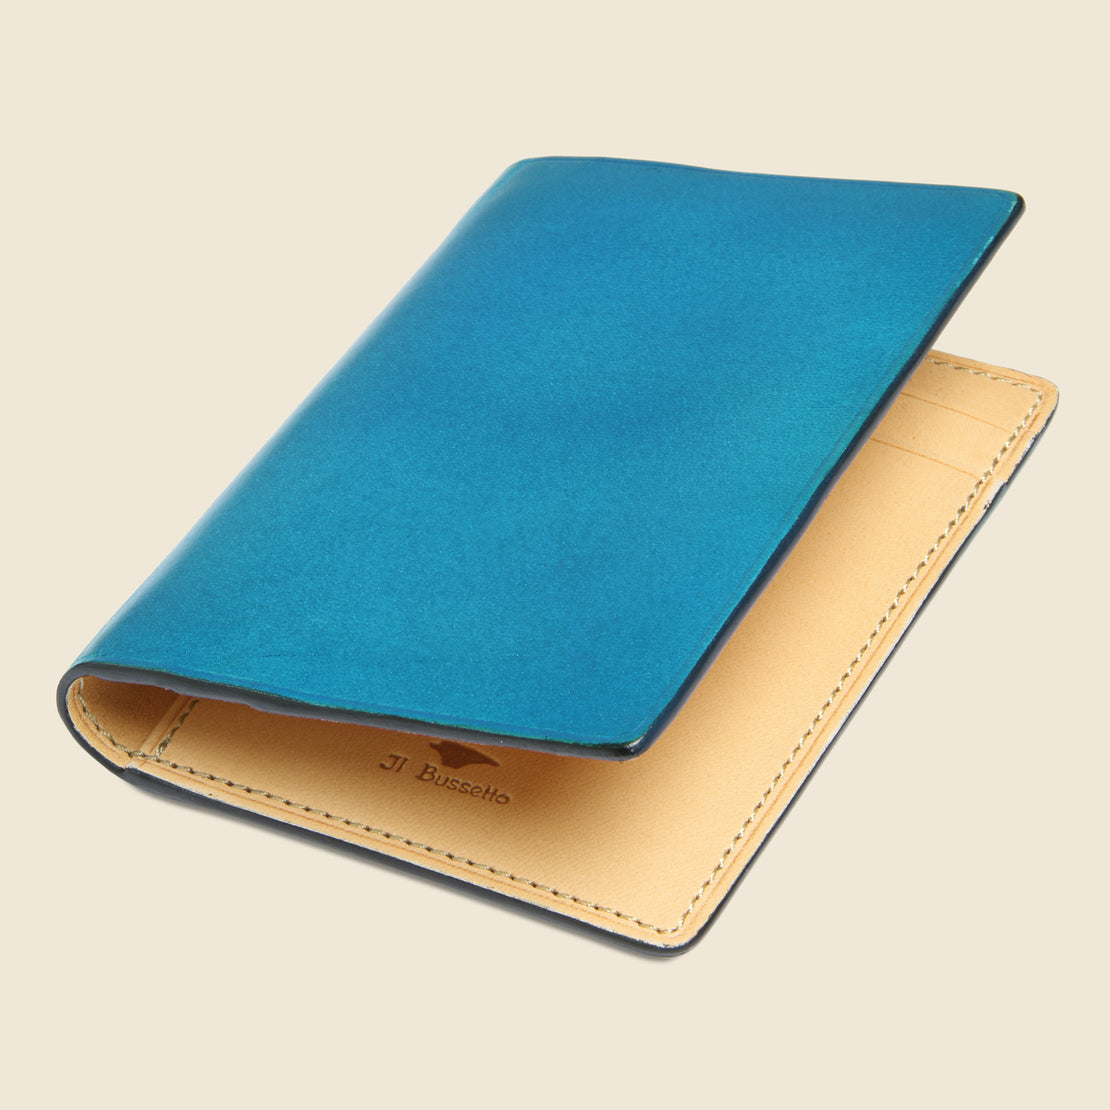 Bi-Fold Card Case - Cadet Blue - Il Bussetto - STAG Provisions - Accessories - Wallets